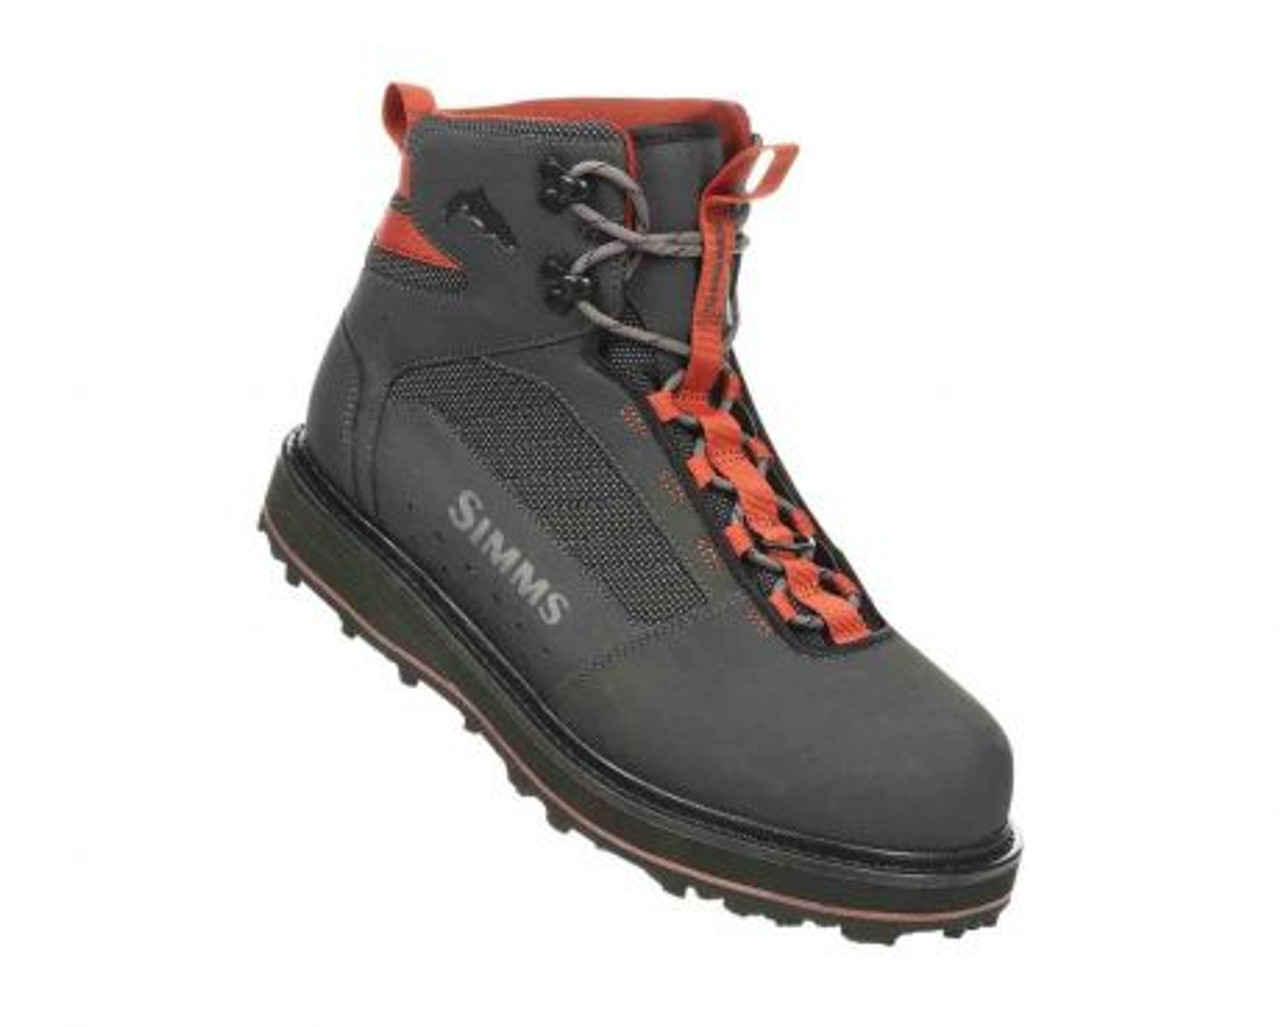 MENS TRIBUTARY BOOT - RUBBER